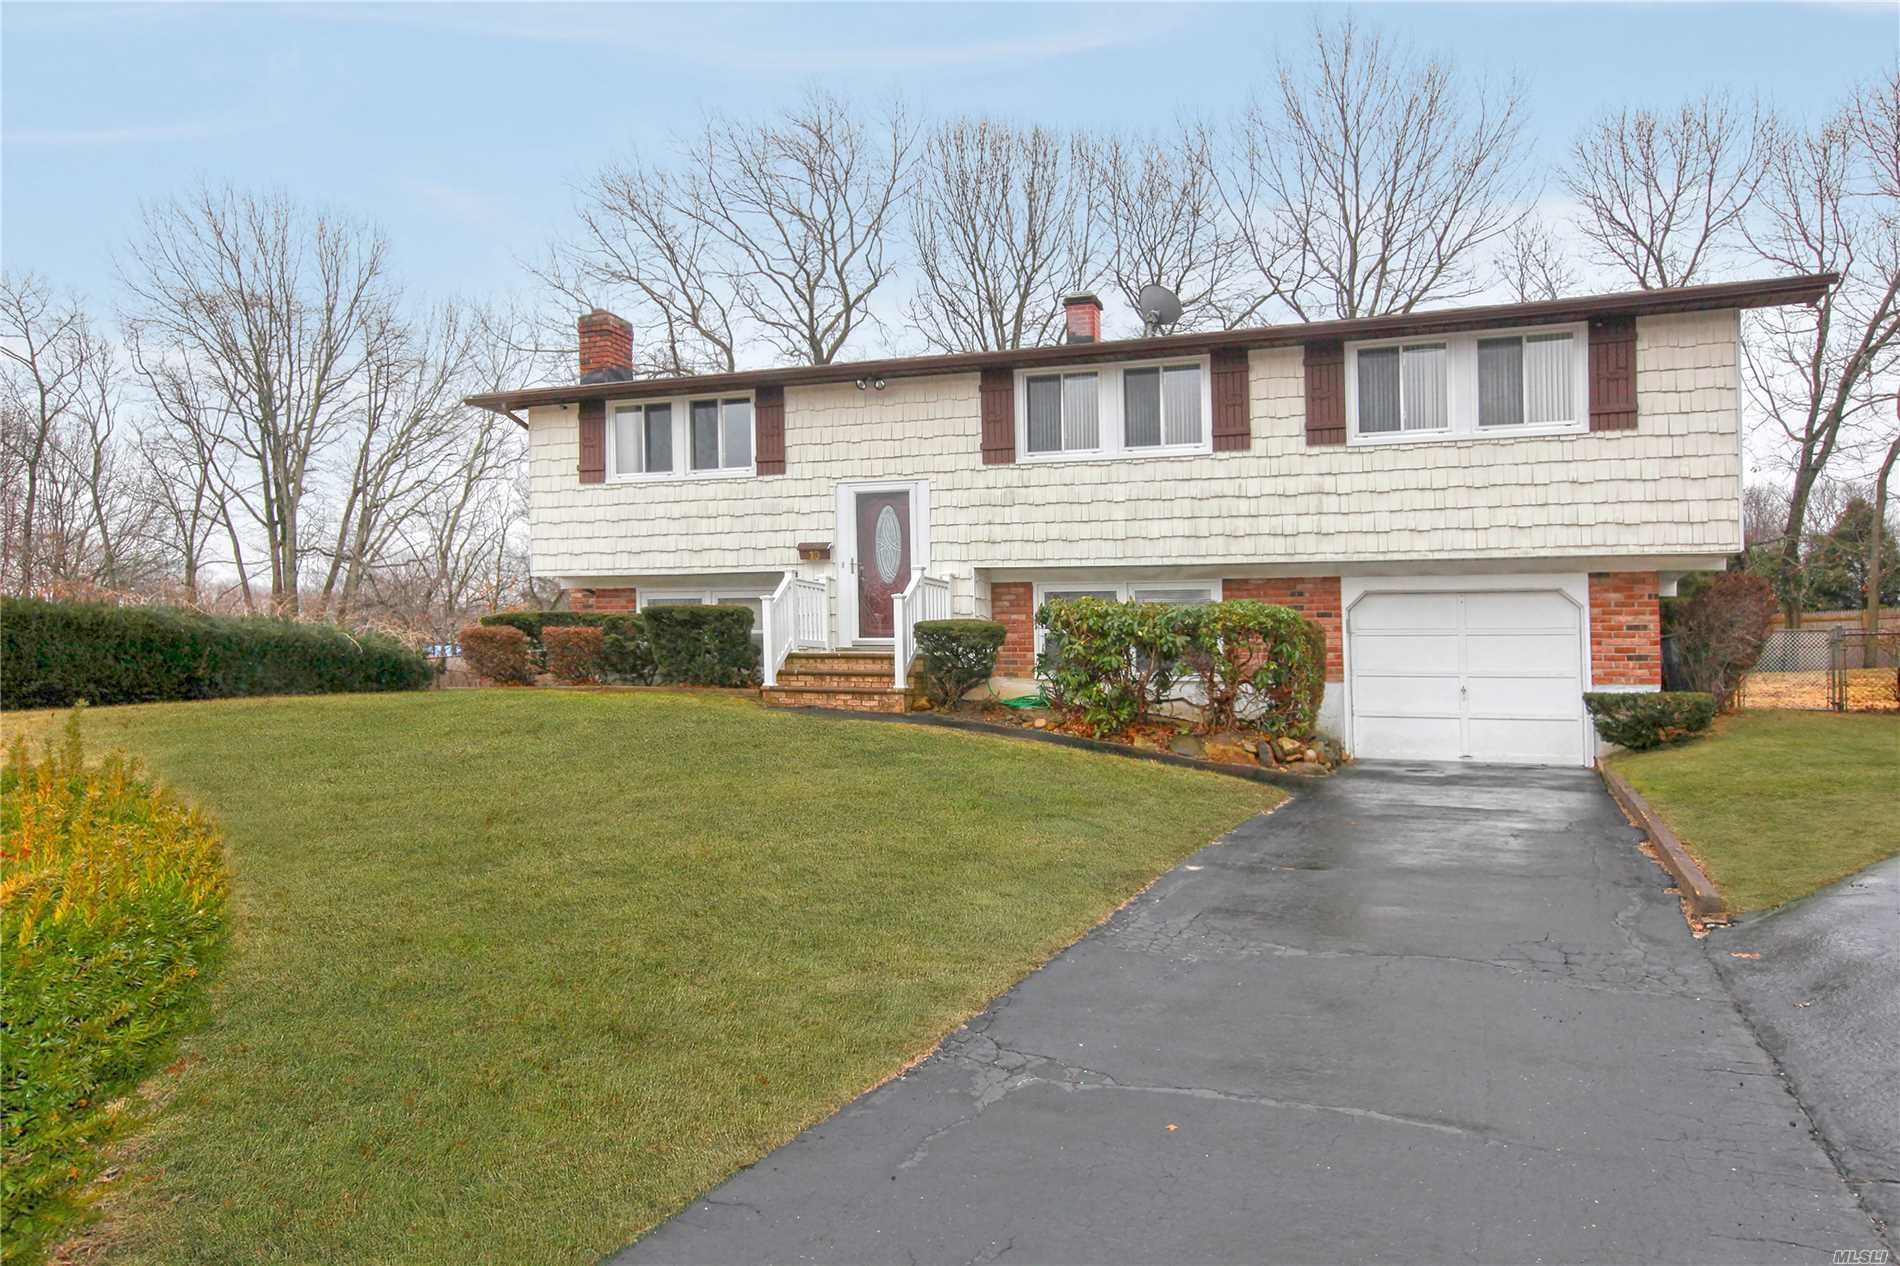 10 Arrowhead Ct - S. Setauket, New York